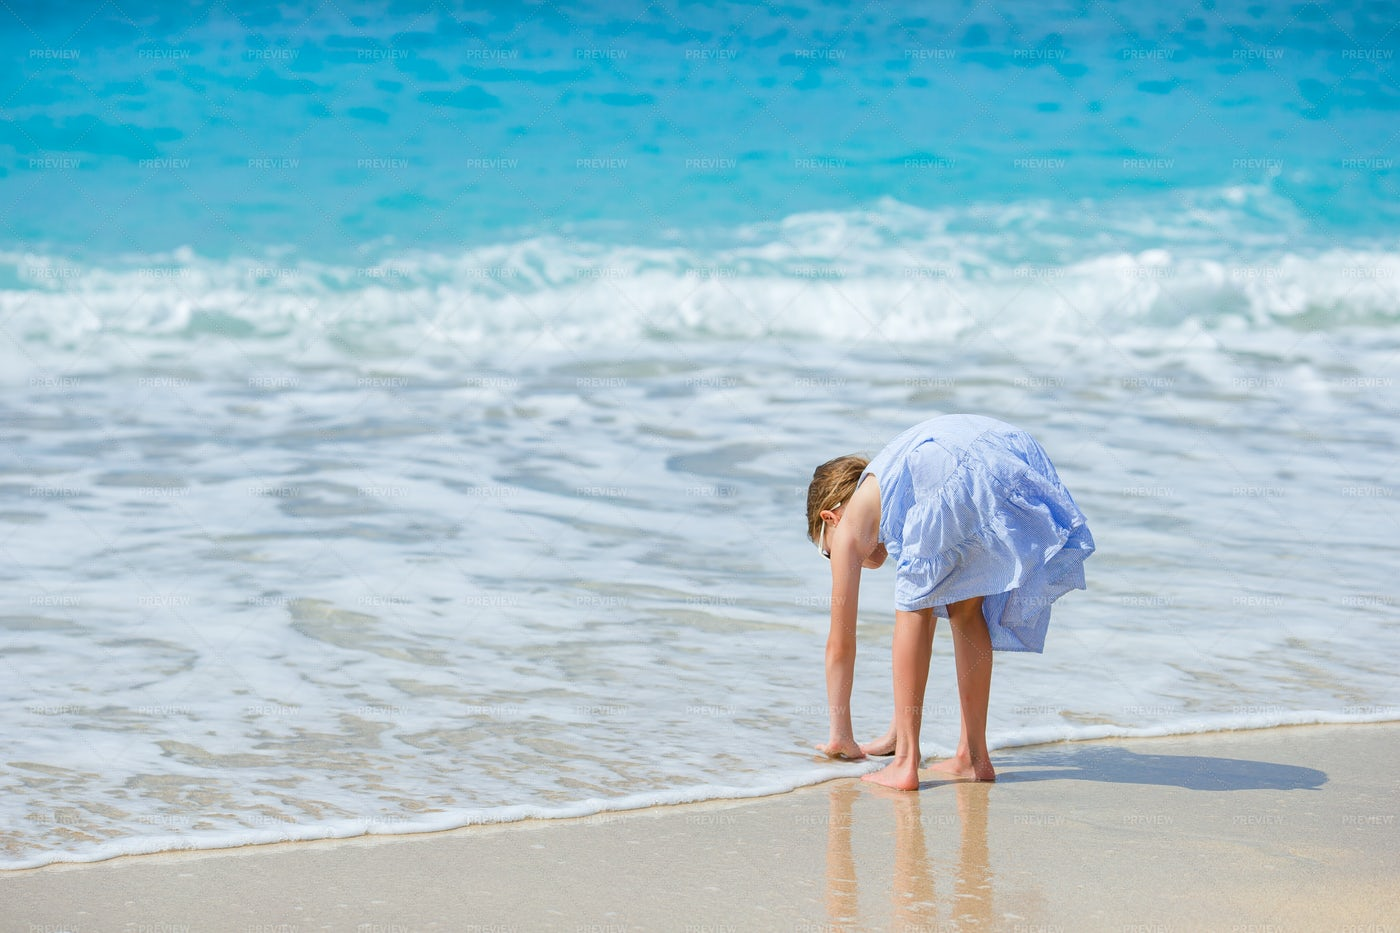 Girl Touching Water On The Beach: Stock Photos